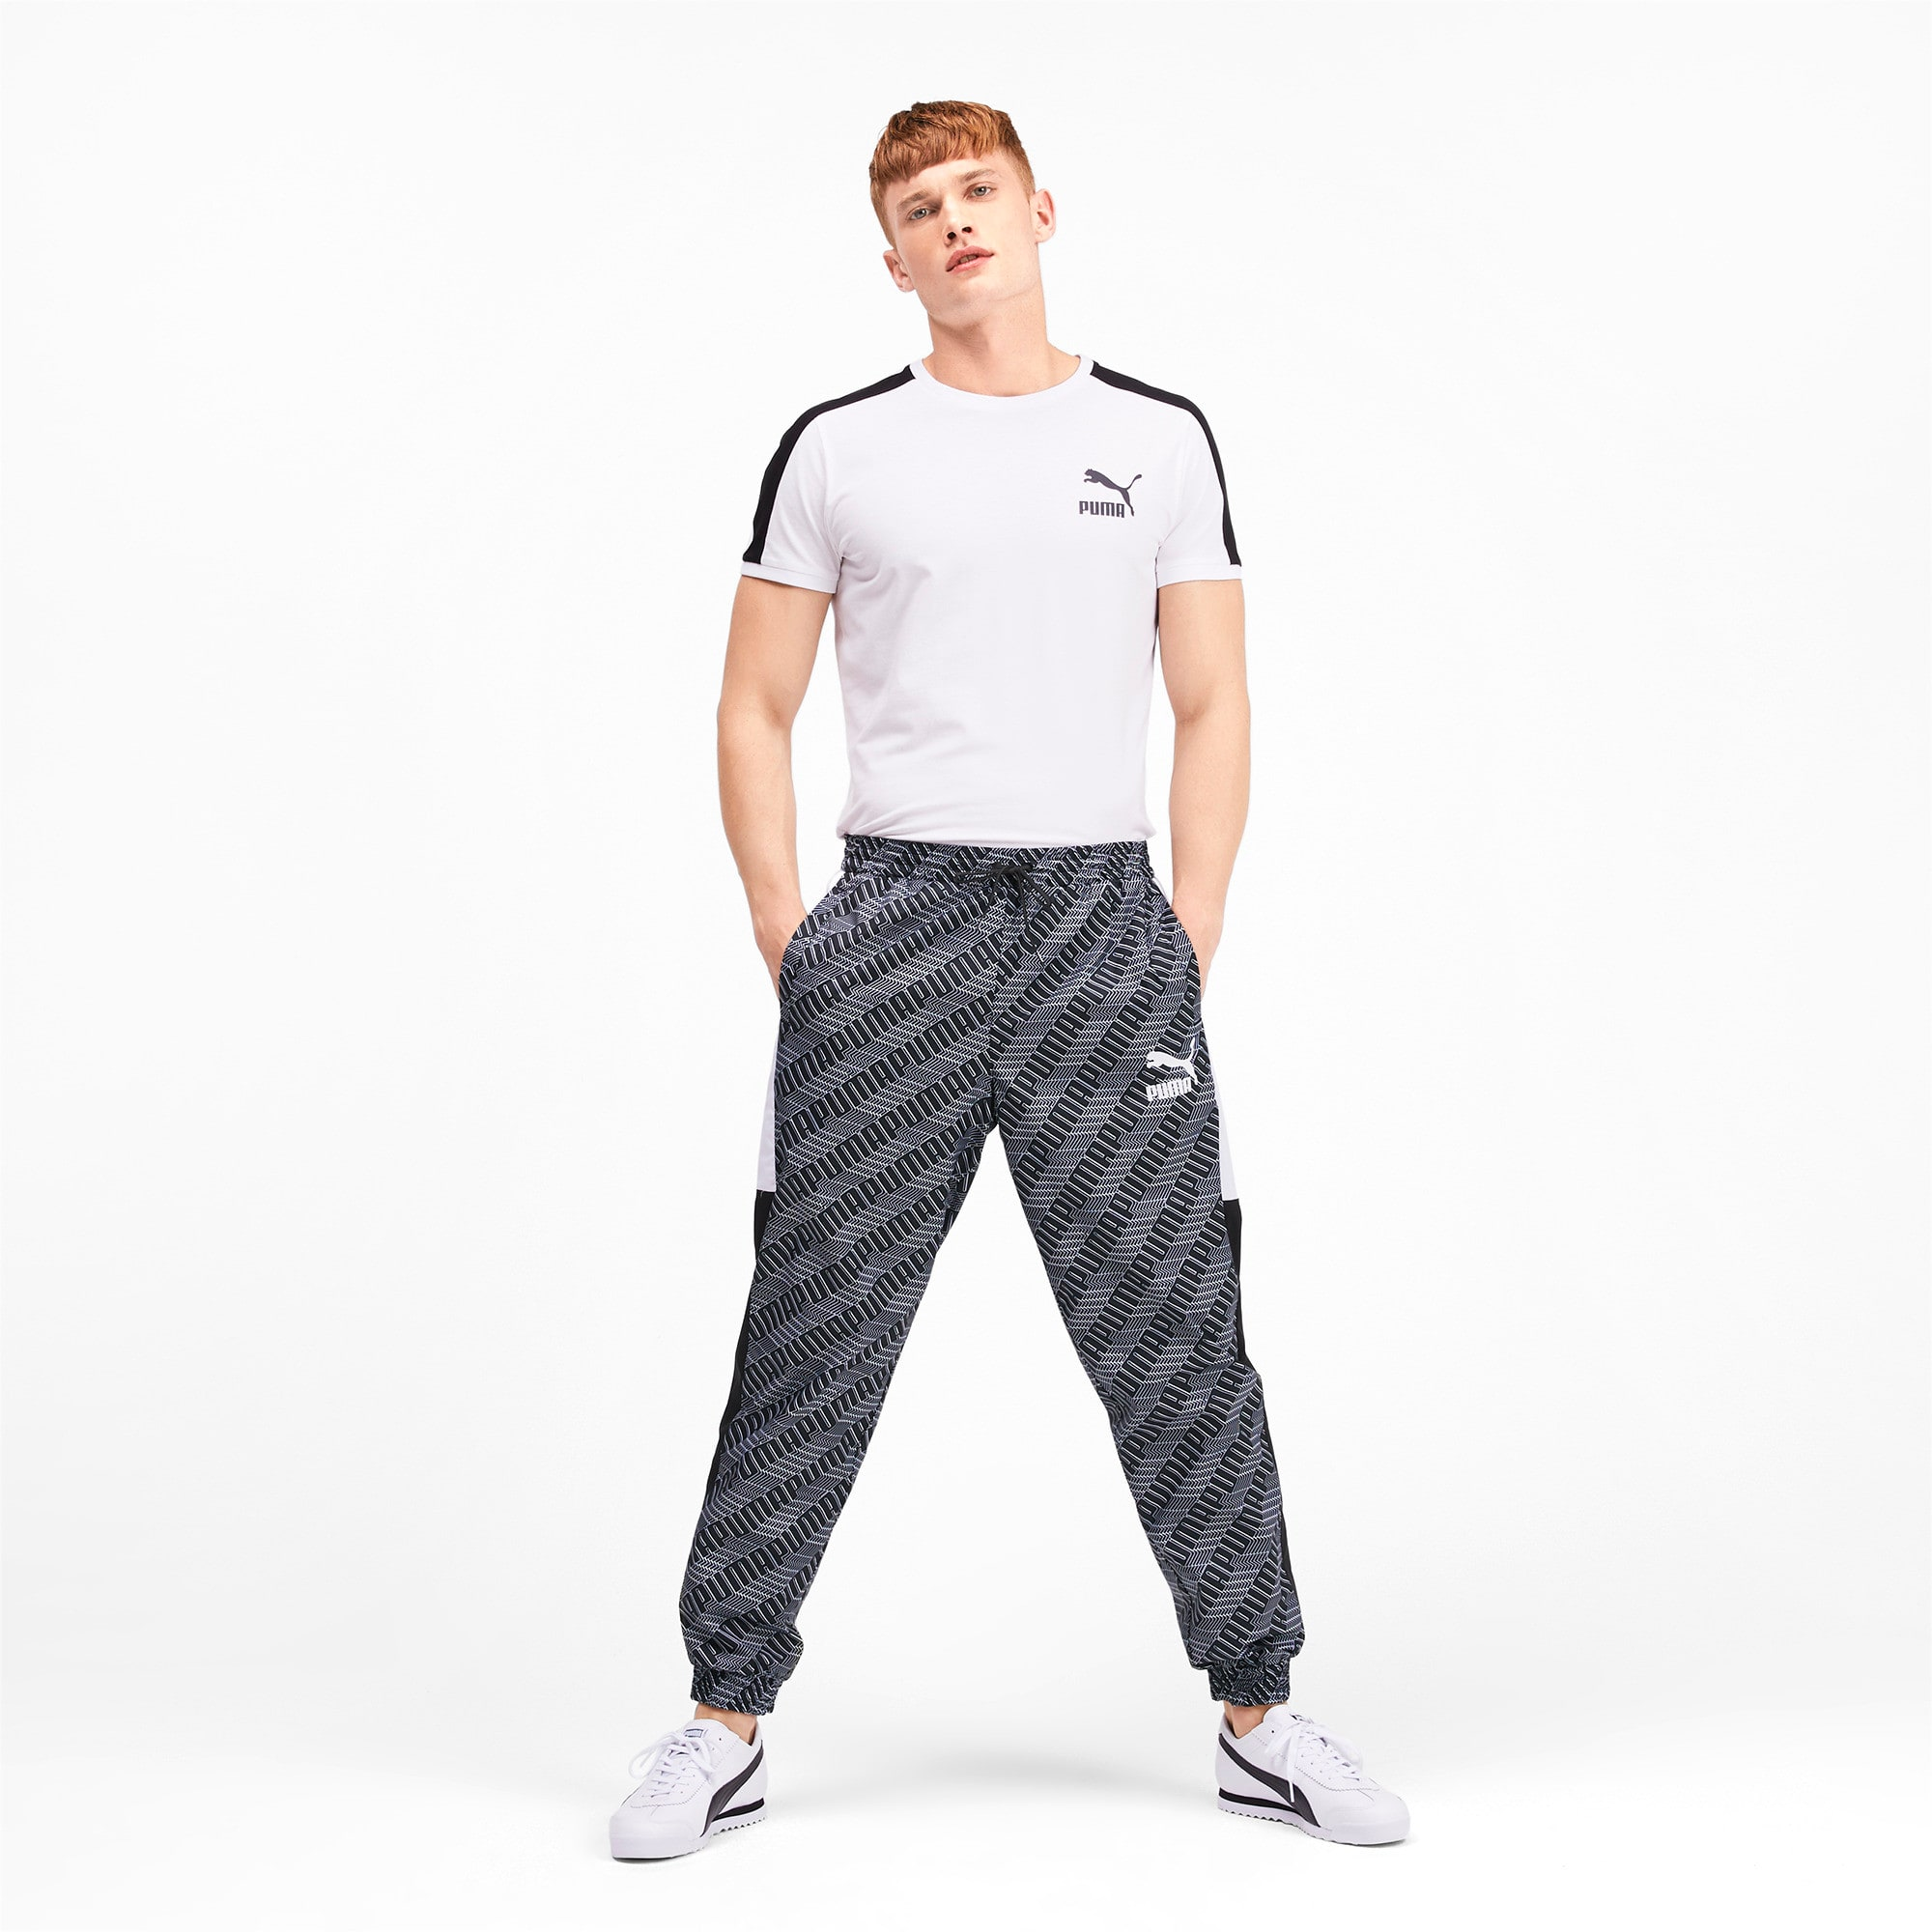 Thumbnail 4 of T7 AOP Panel Men's Track Pants, Puma Black-Repeat logo, medium